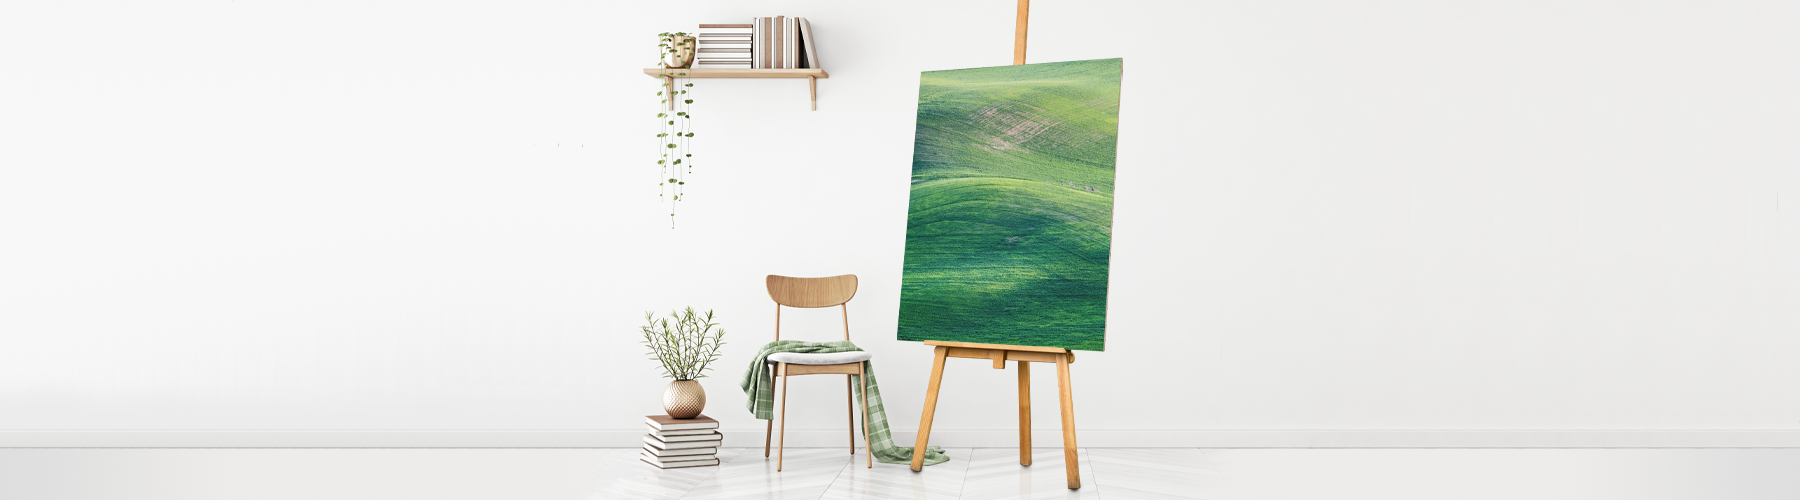 How to Hang Your Canvas on the Wall